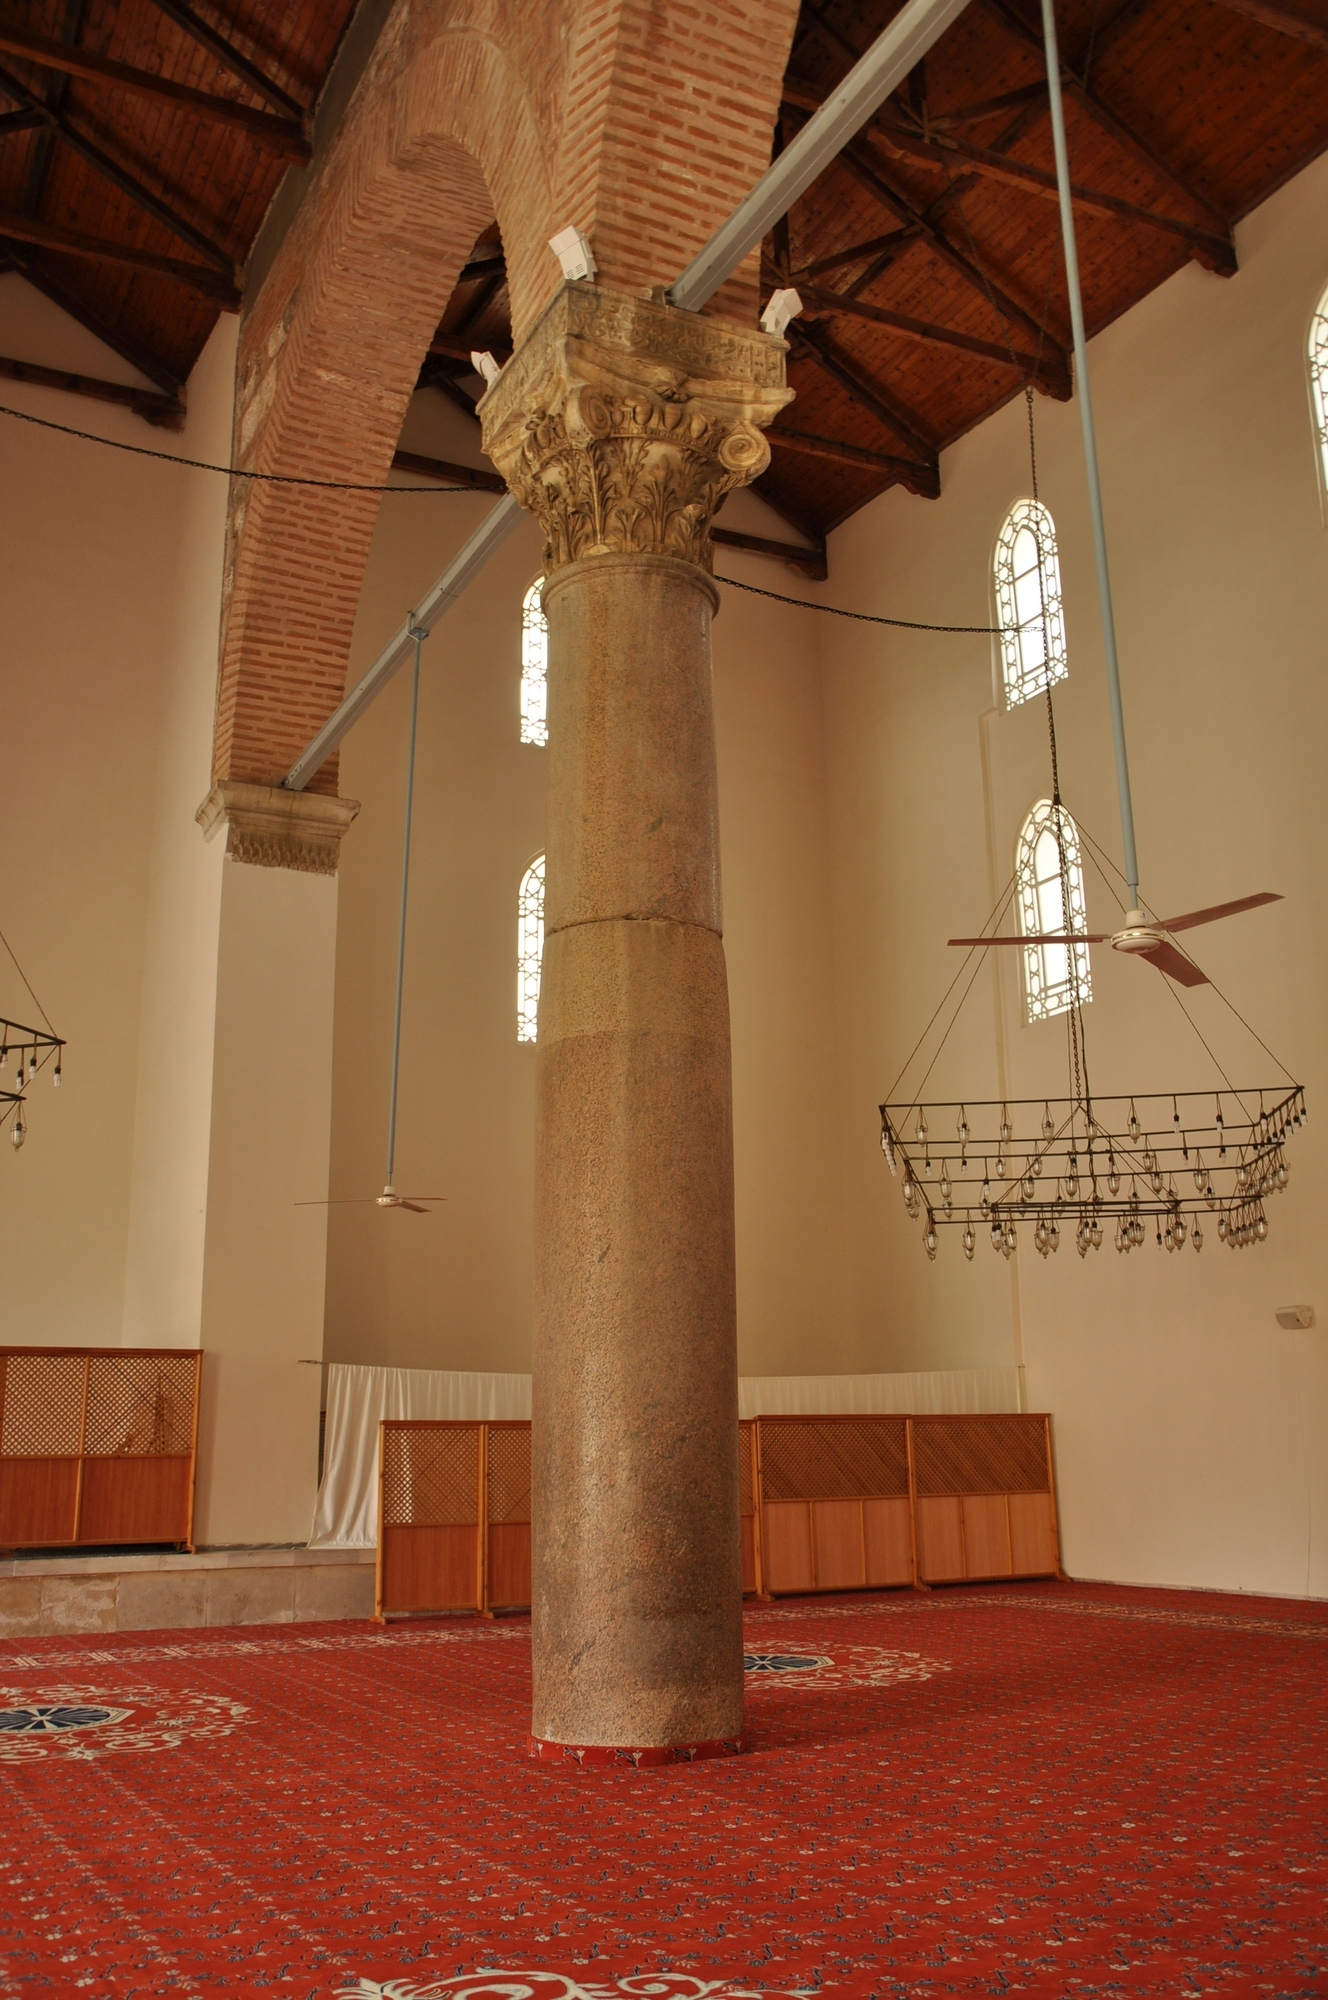 Massive column with the capital of the Composite order in İsa Bey Mosque